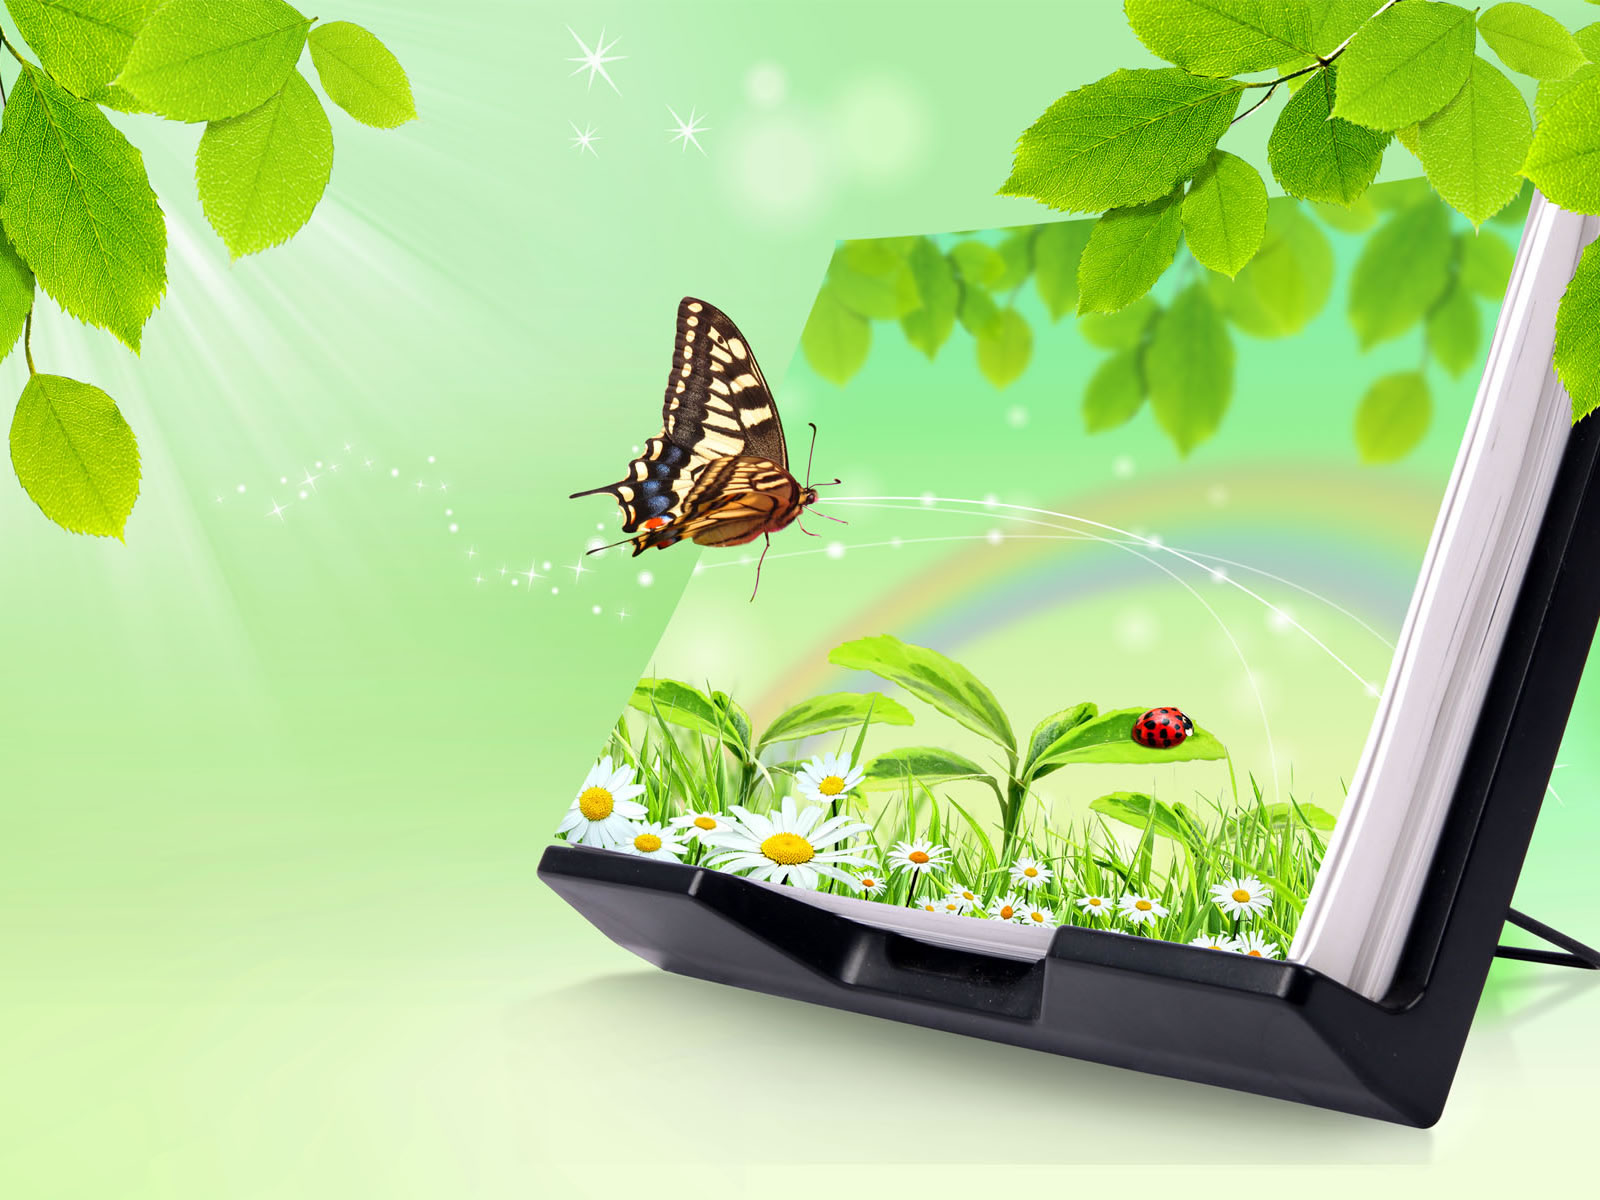 Wallpaper 3d Butterfly   Wallpapers And Pictures 1600x1200